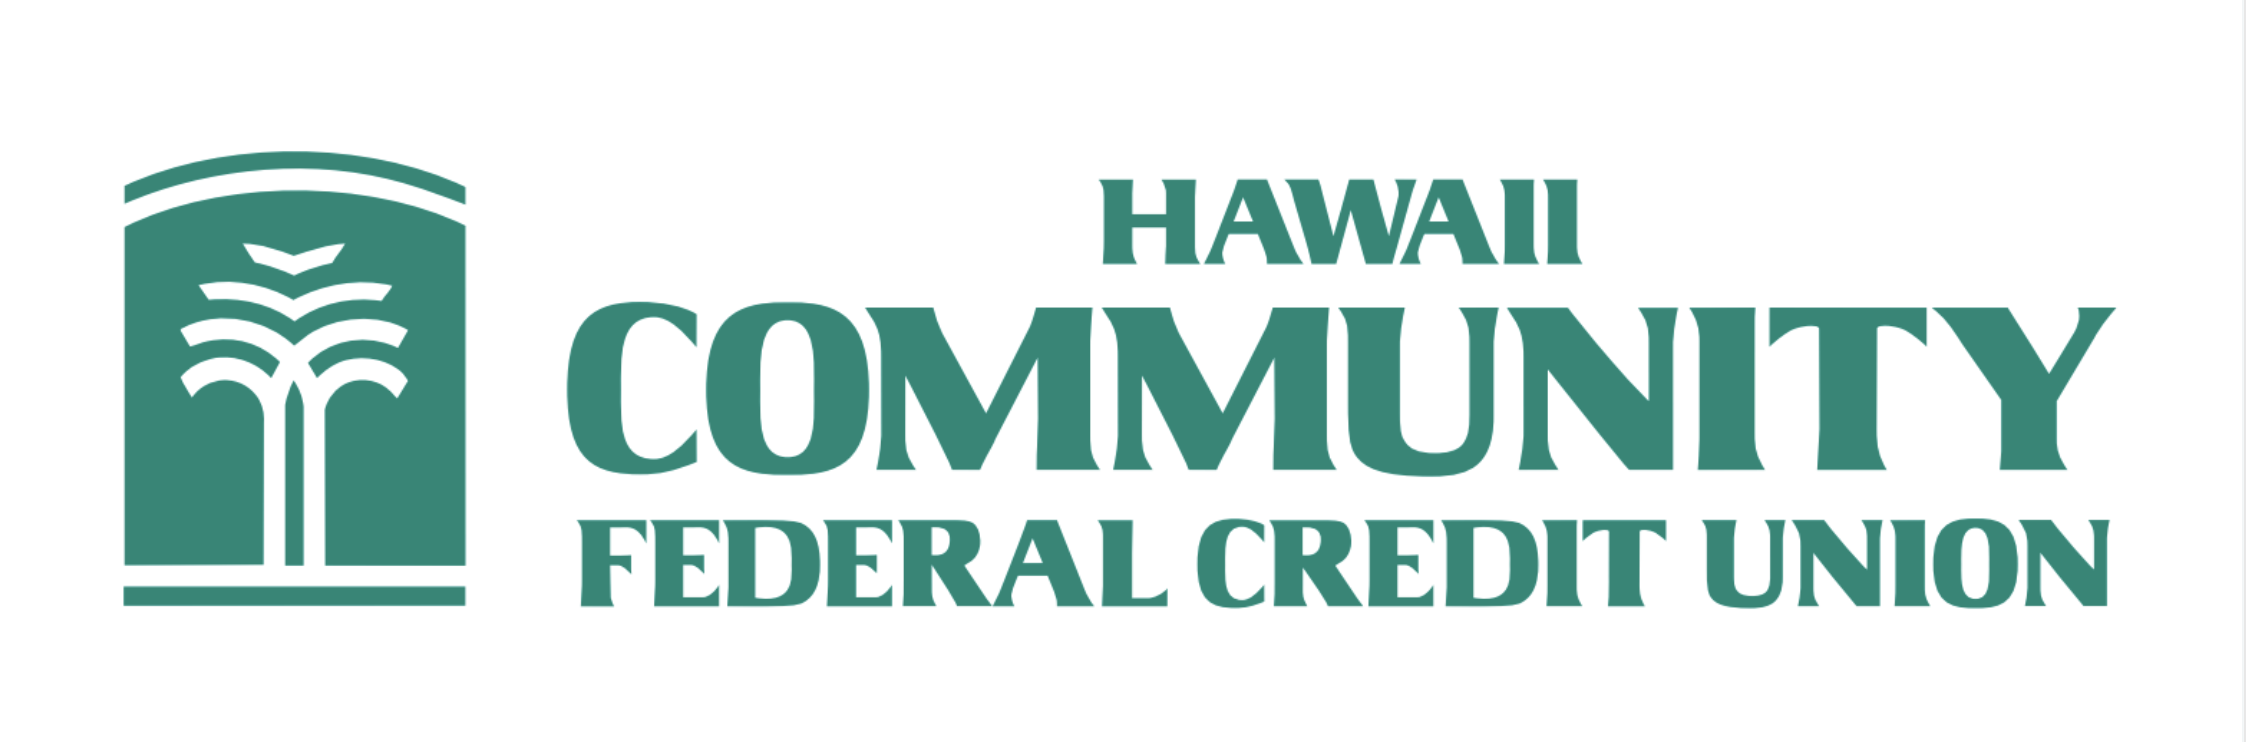 Hawai'i Community FCU